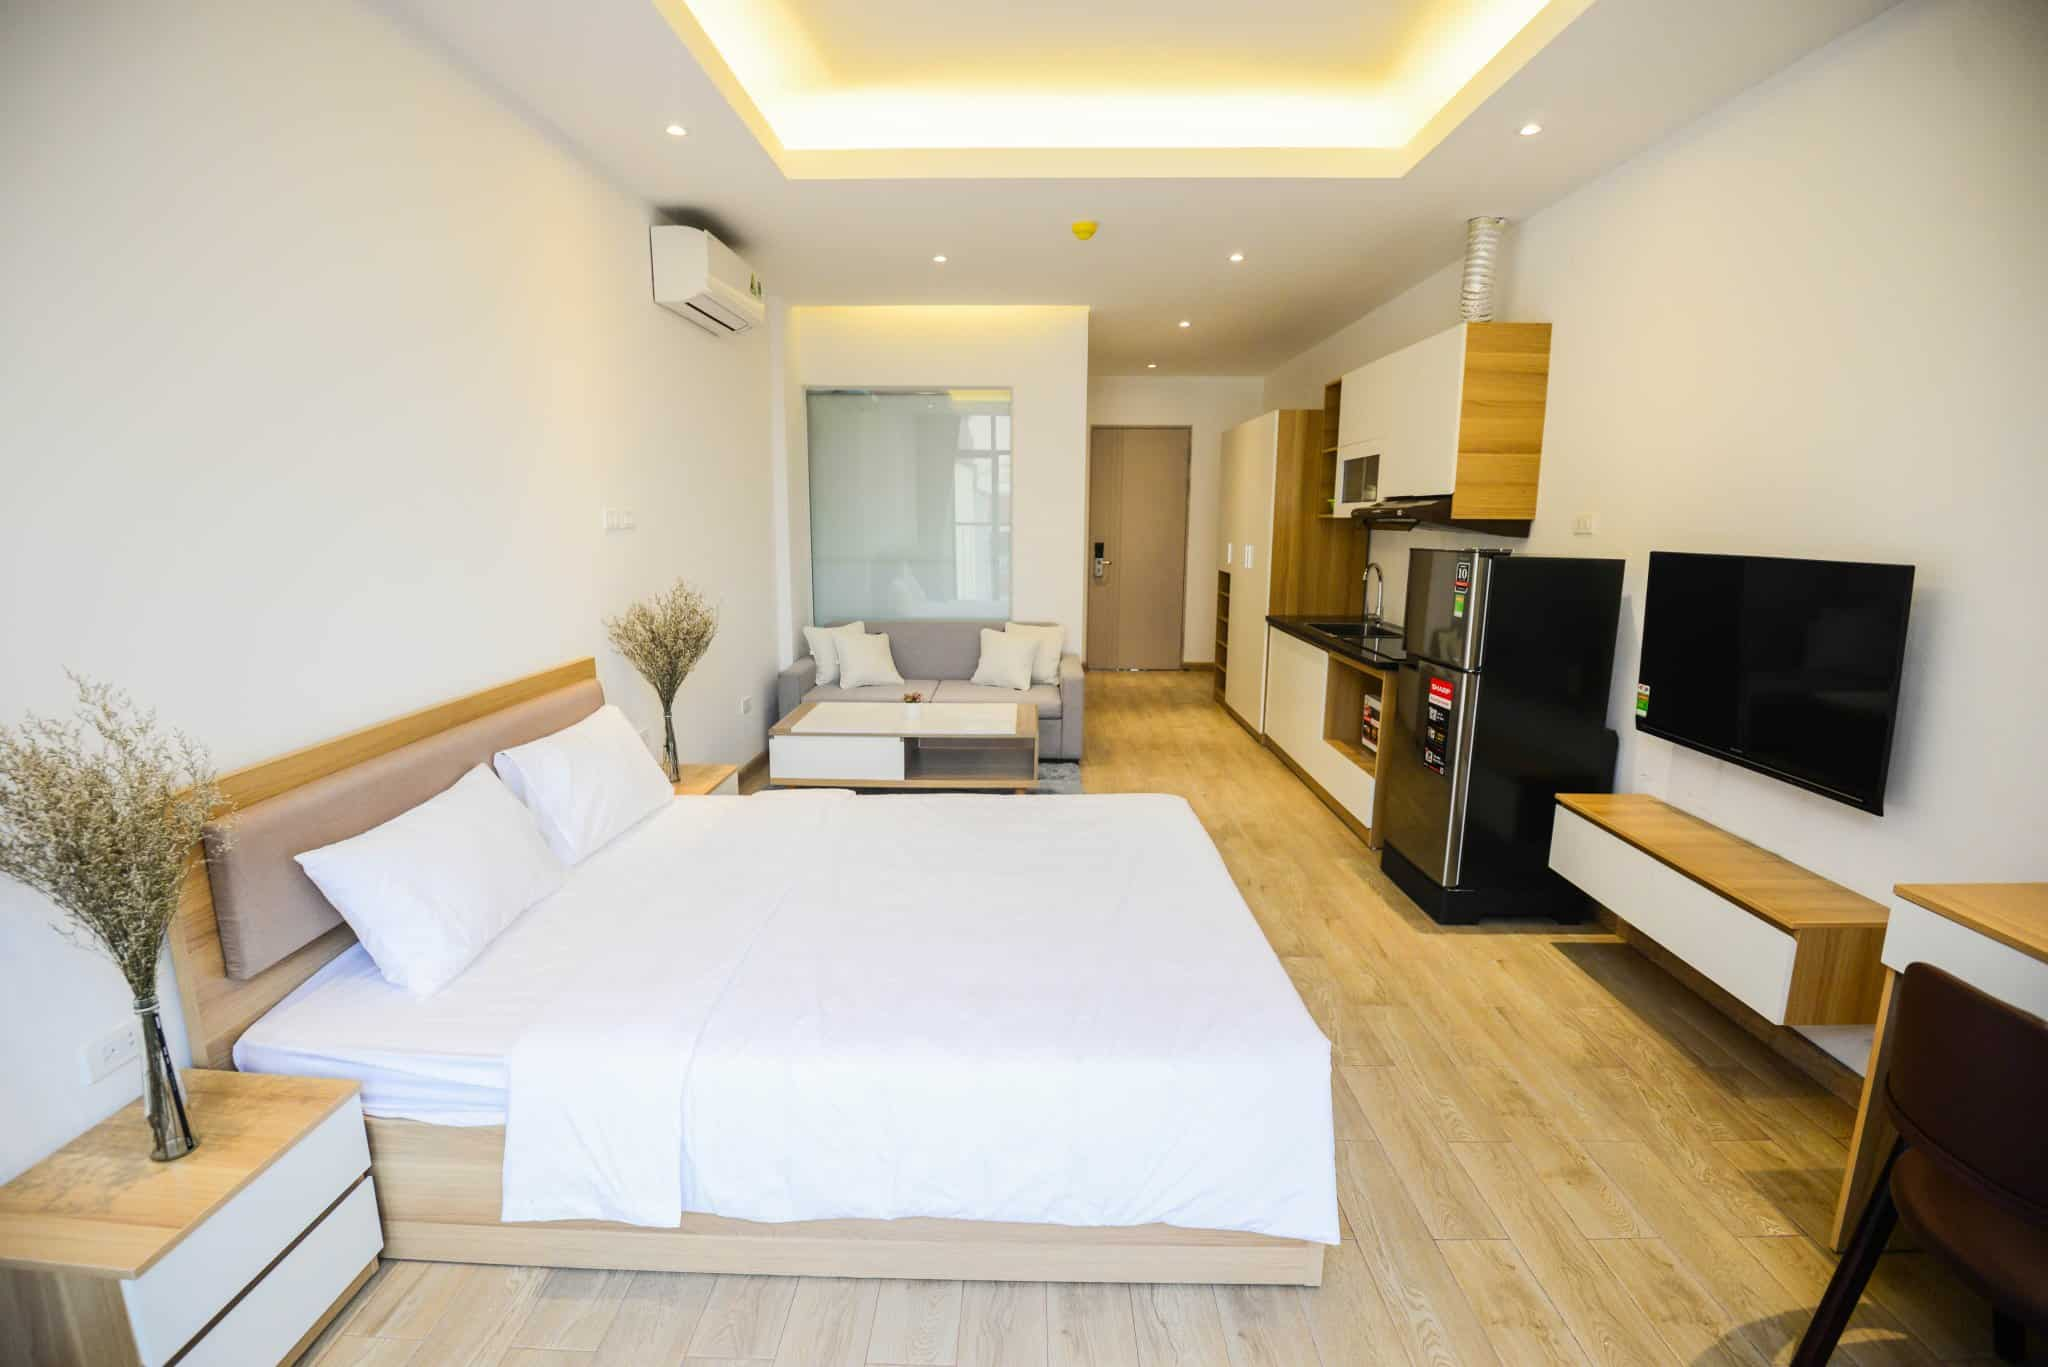 STUDIO APARTMENT – CODE 12 – 12 - 12housing is an Investment